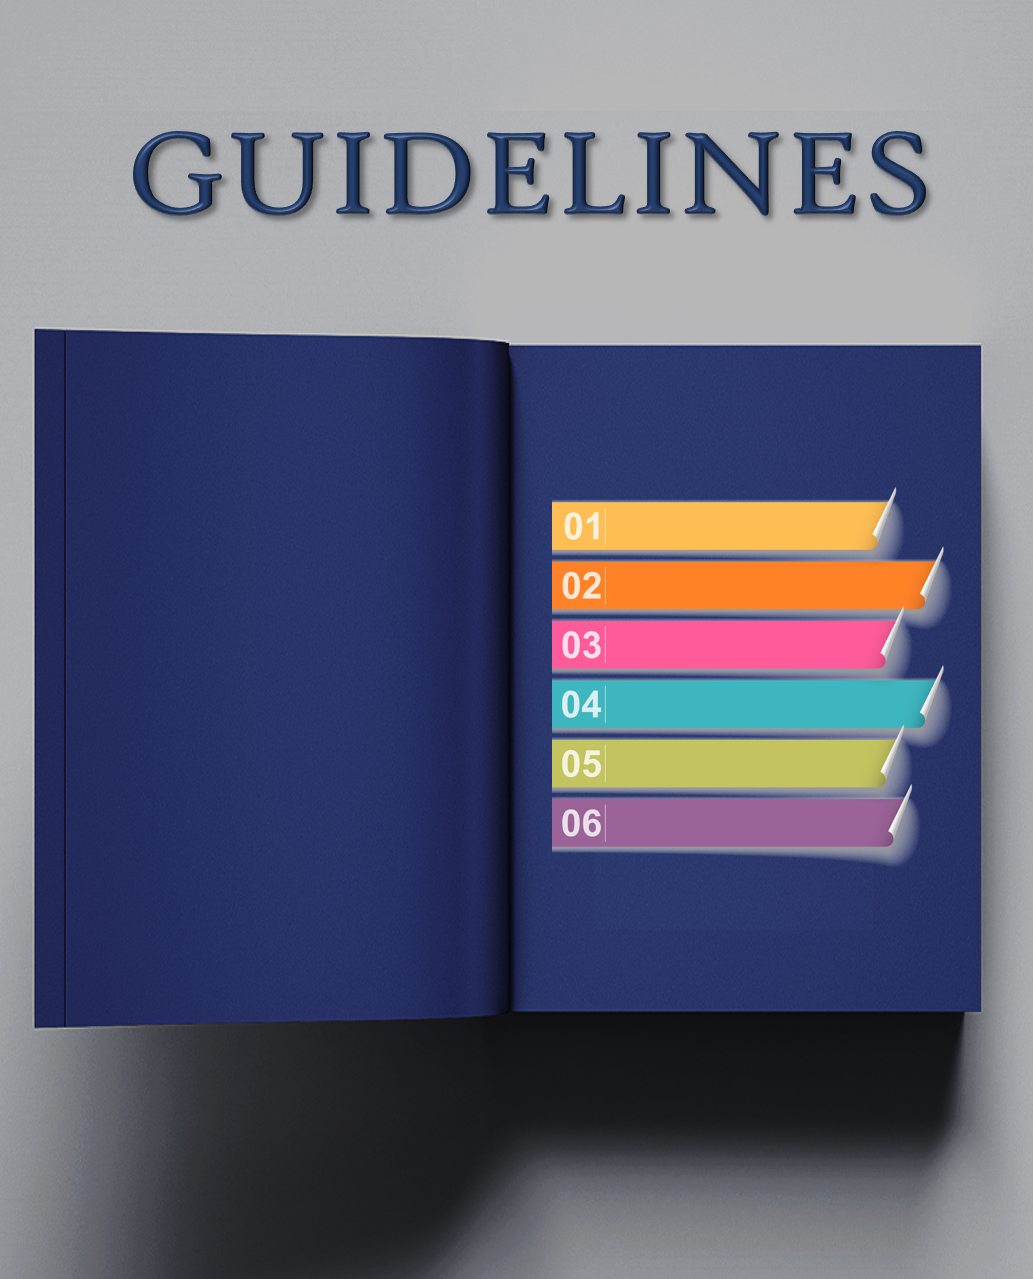 Guidelines.png